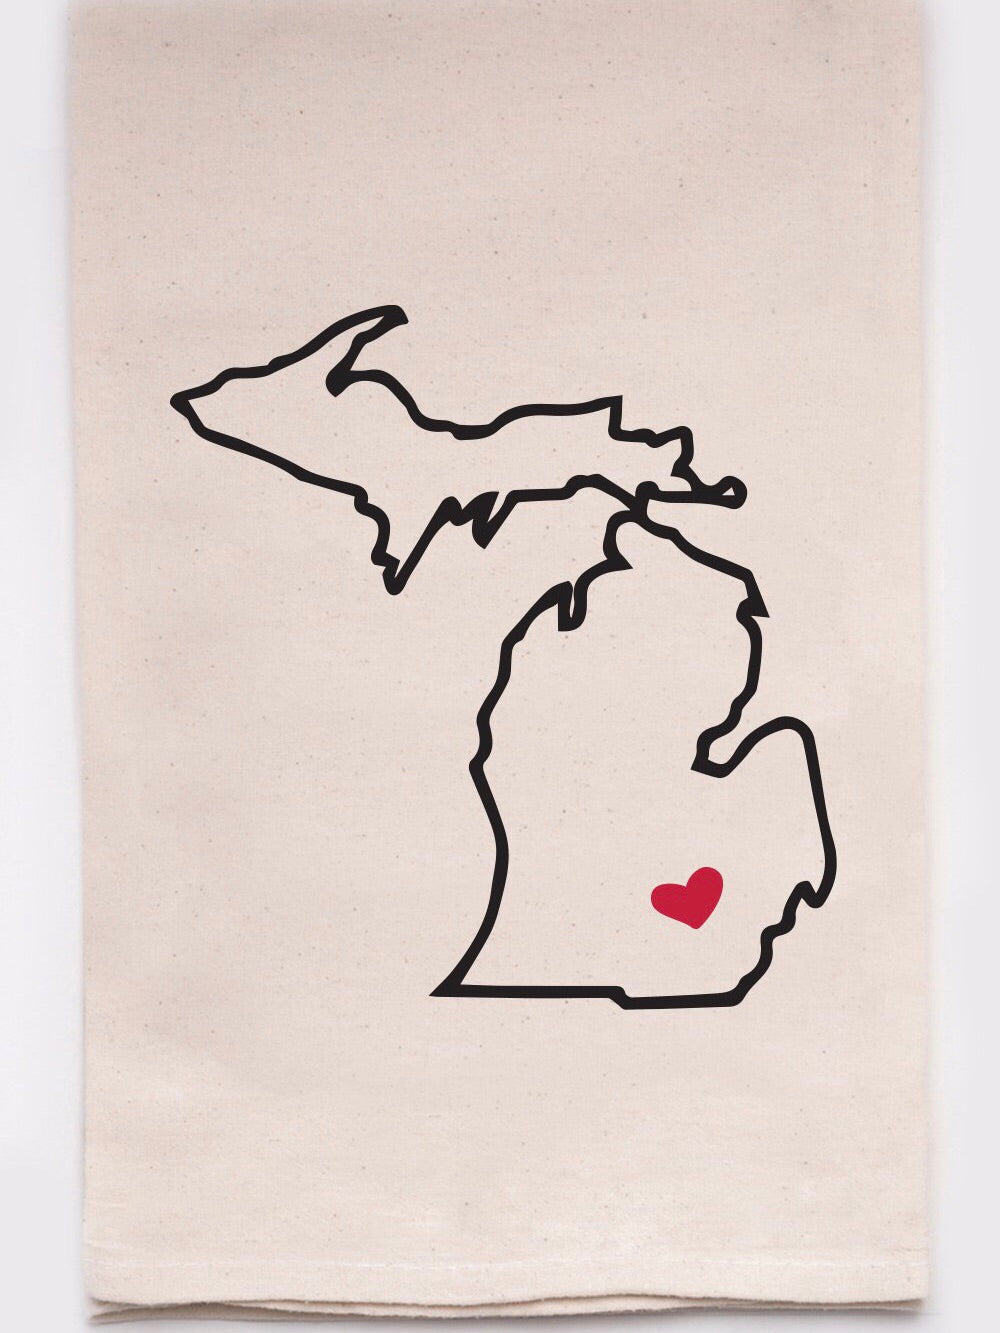 Michigan Heart Pin Dish Towel